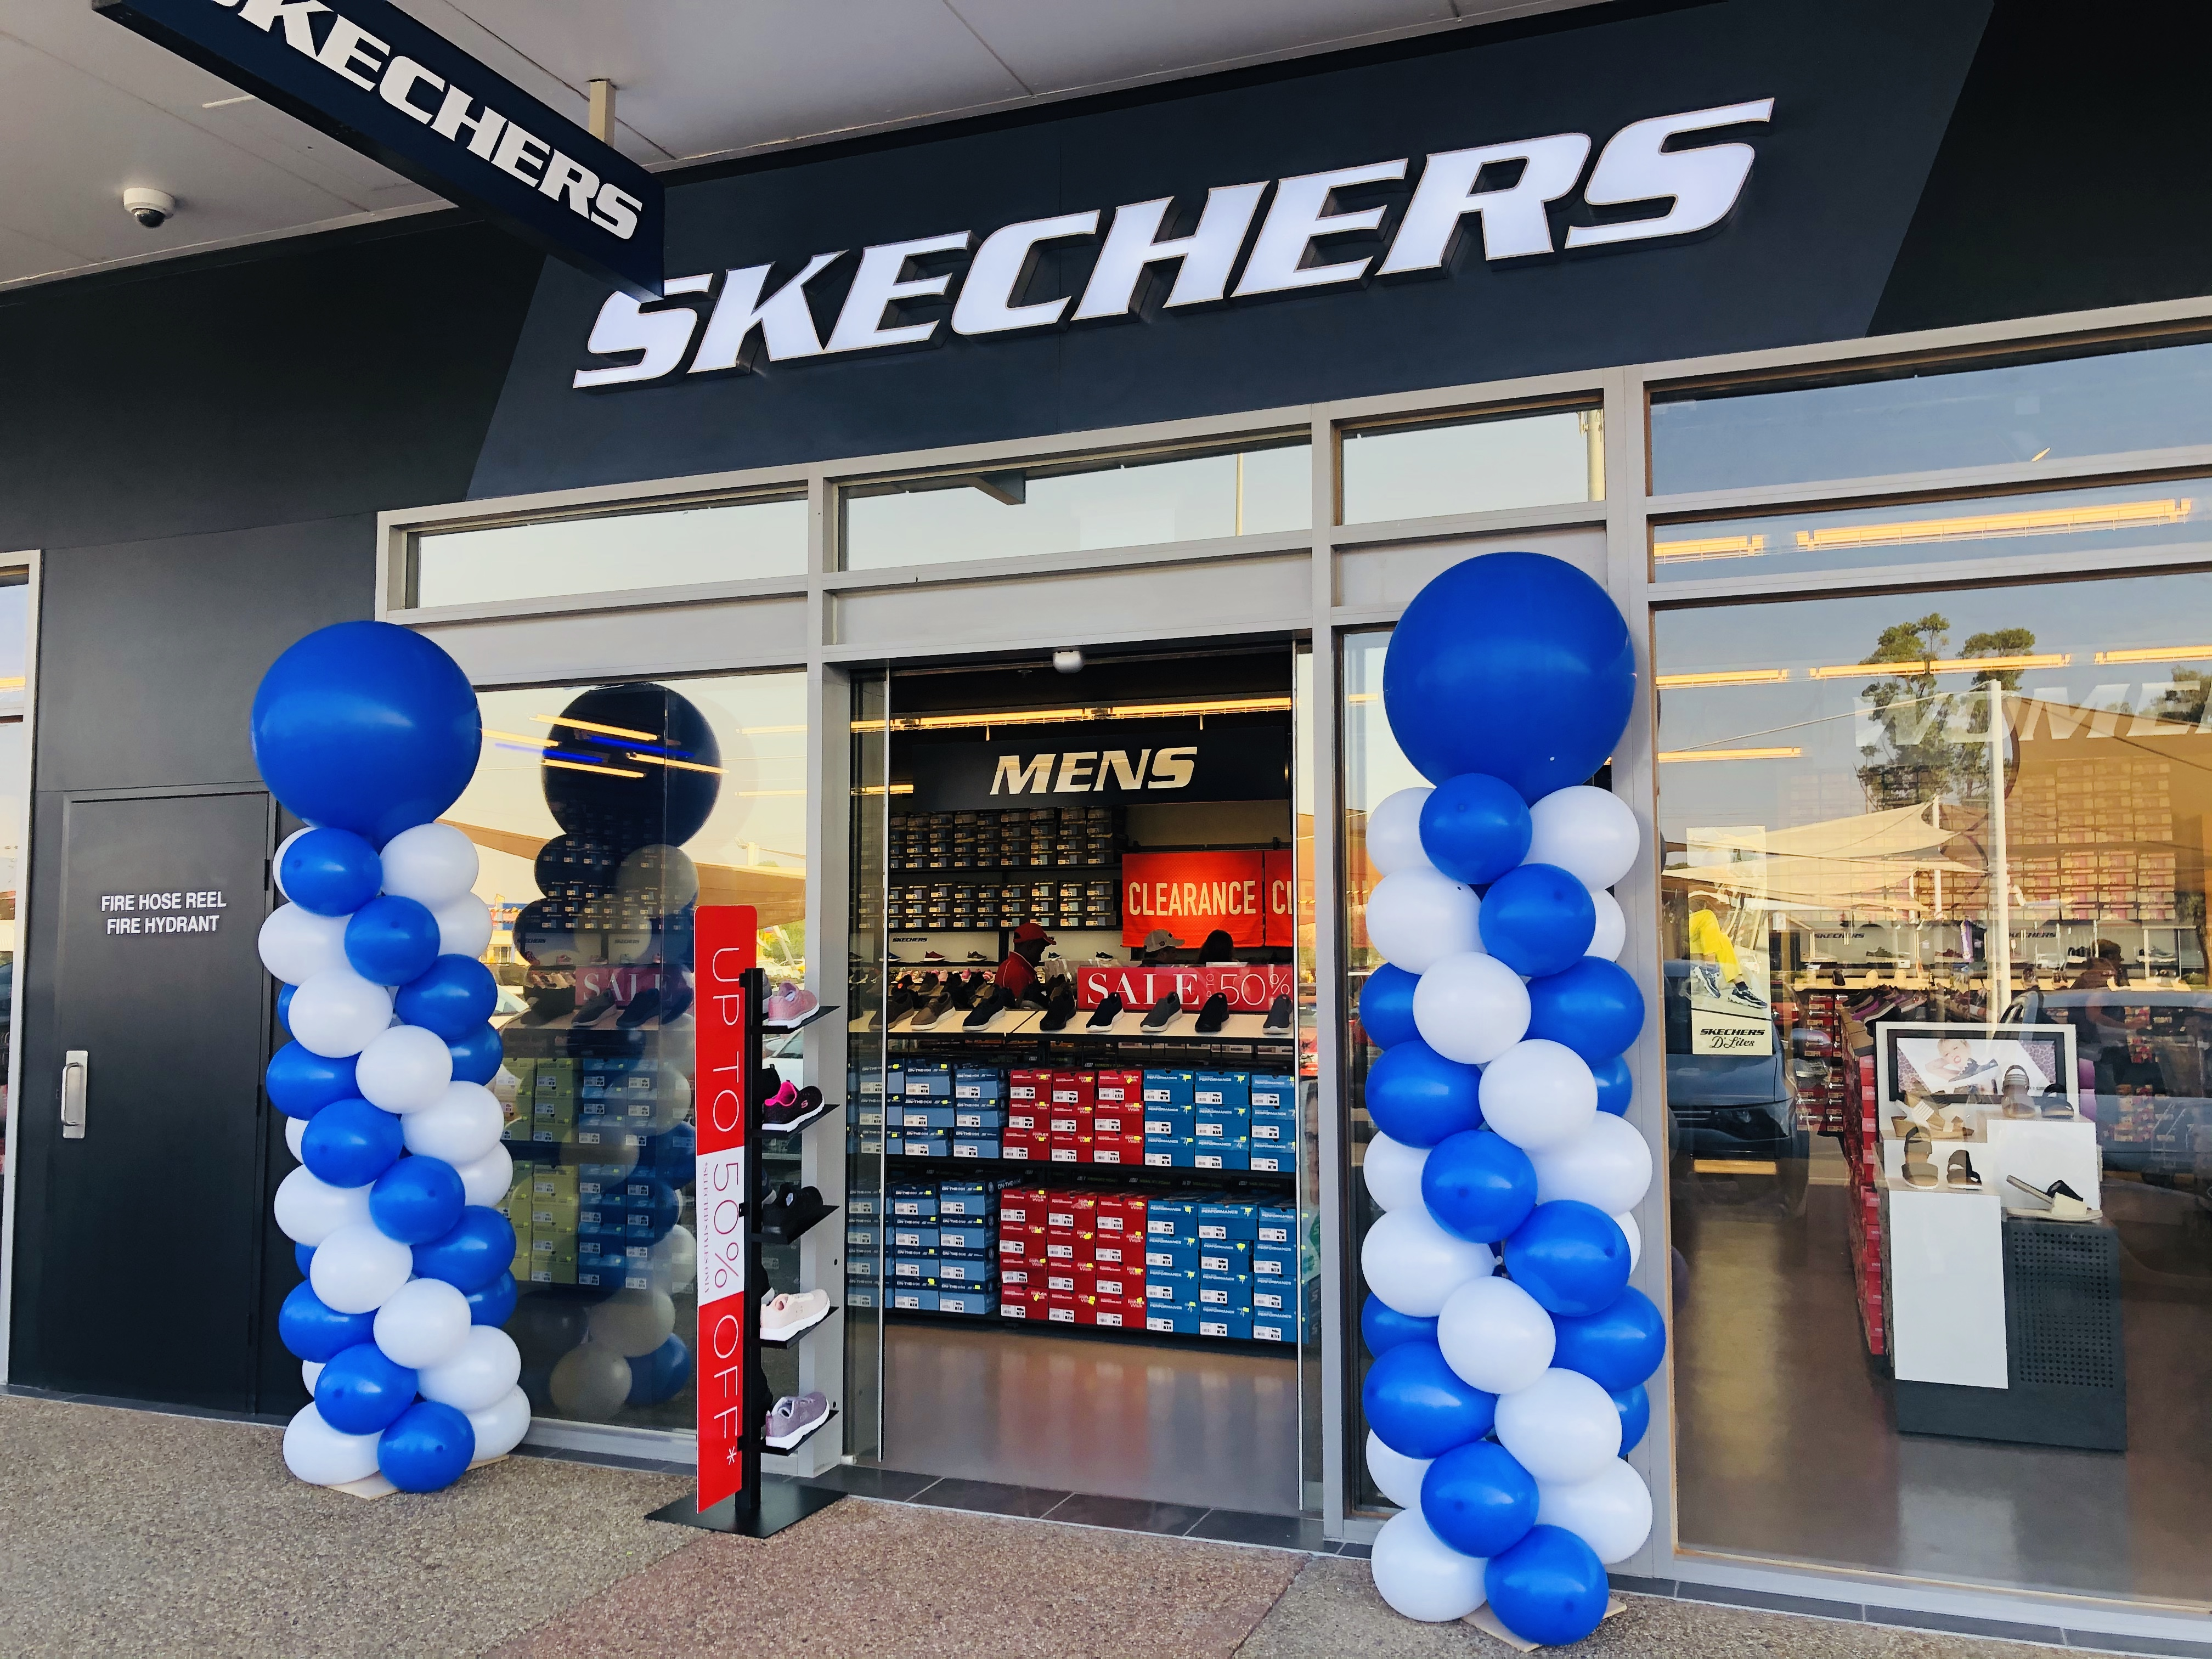 Our Skechers Outlet is NOW OPEN!